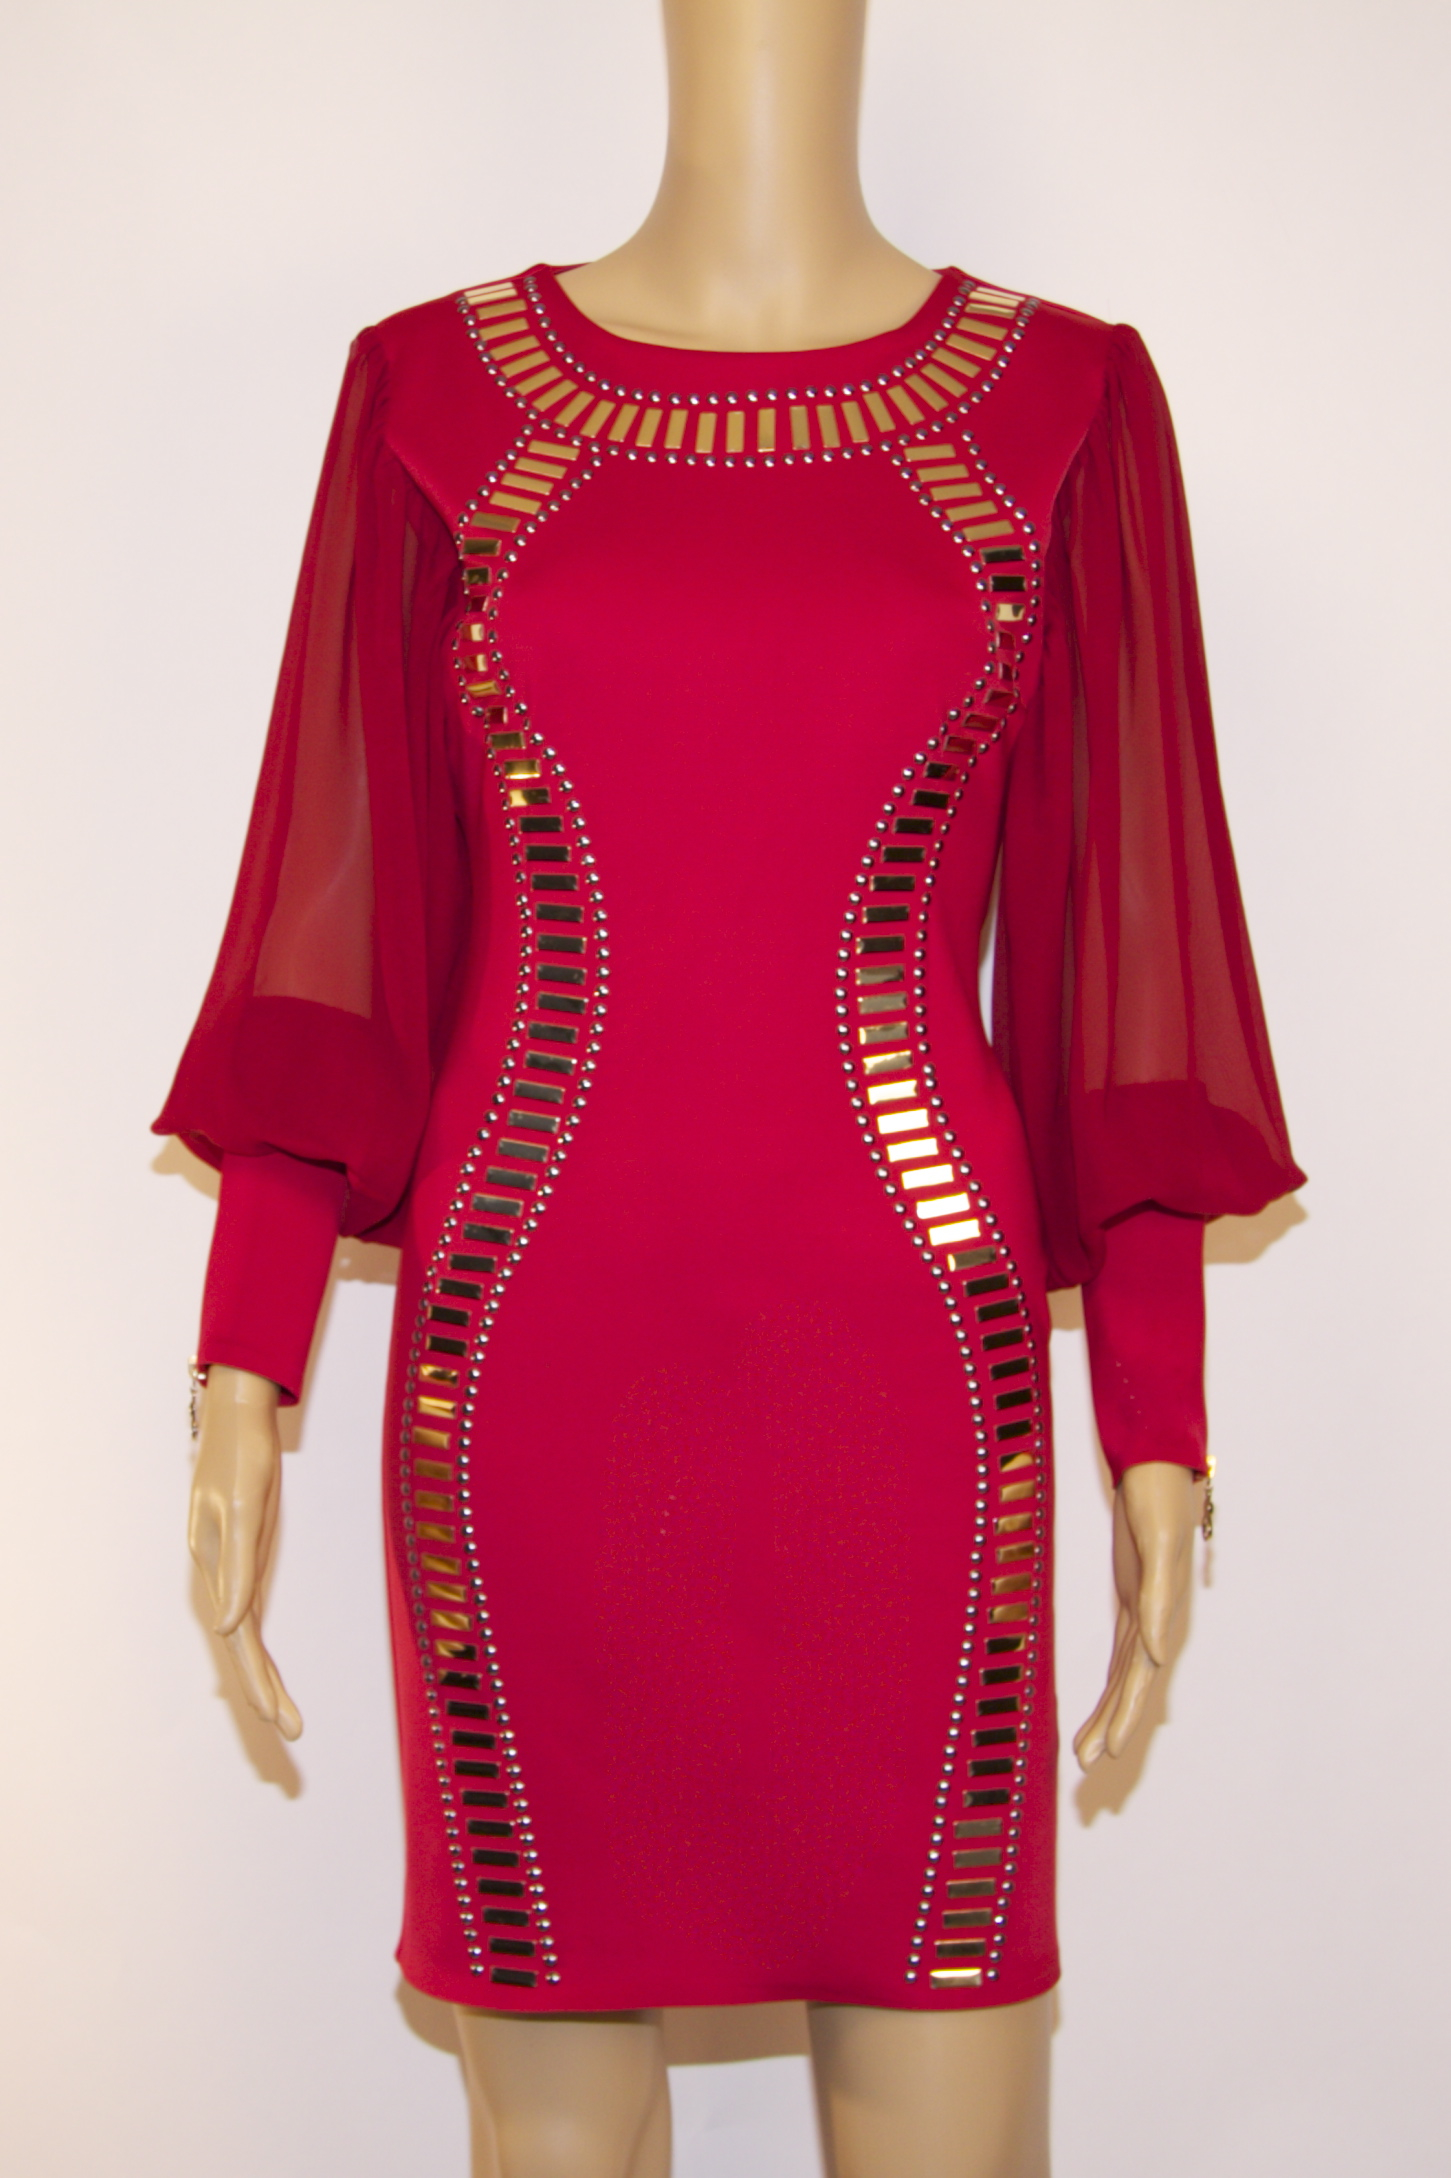 Red bodycon dress with gold studs skystruk for Dress shirt studs uk